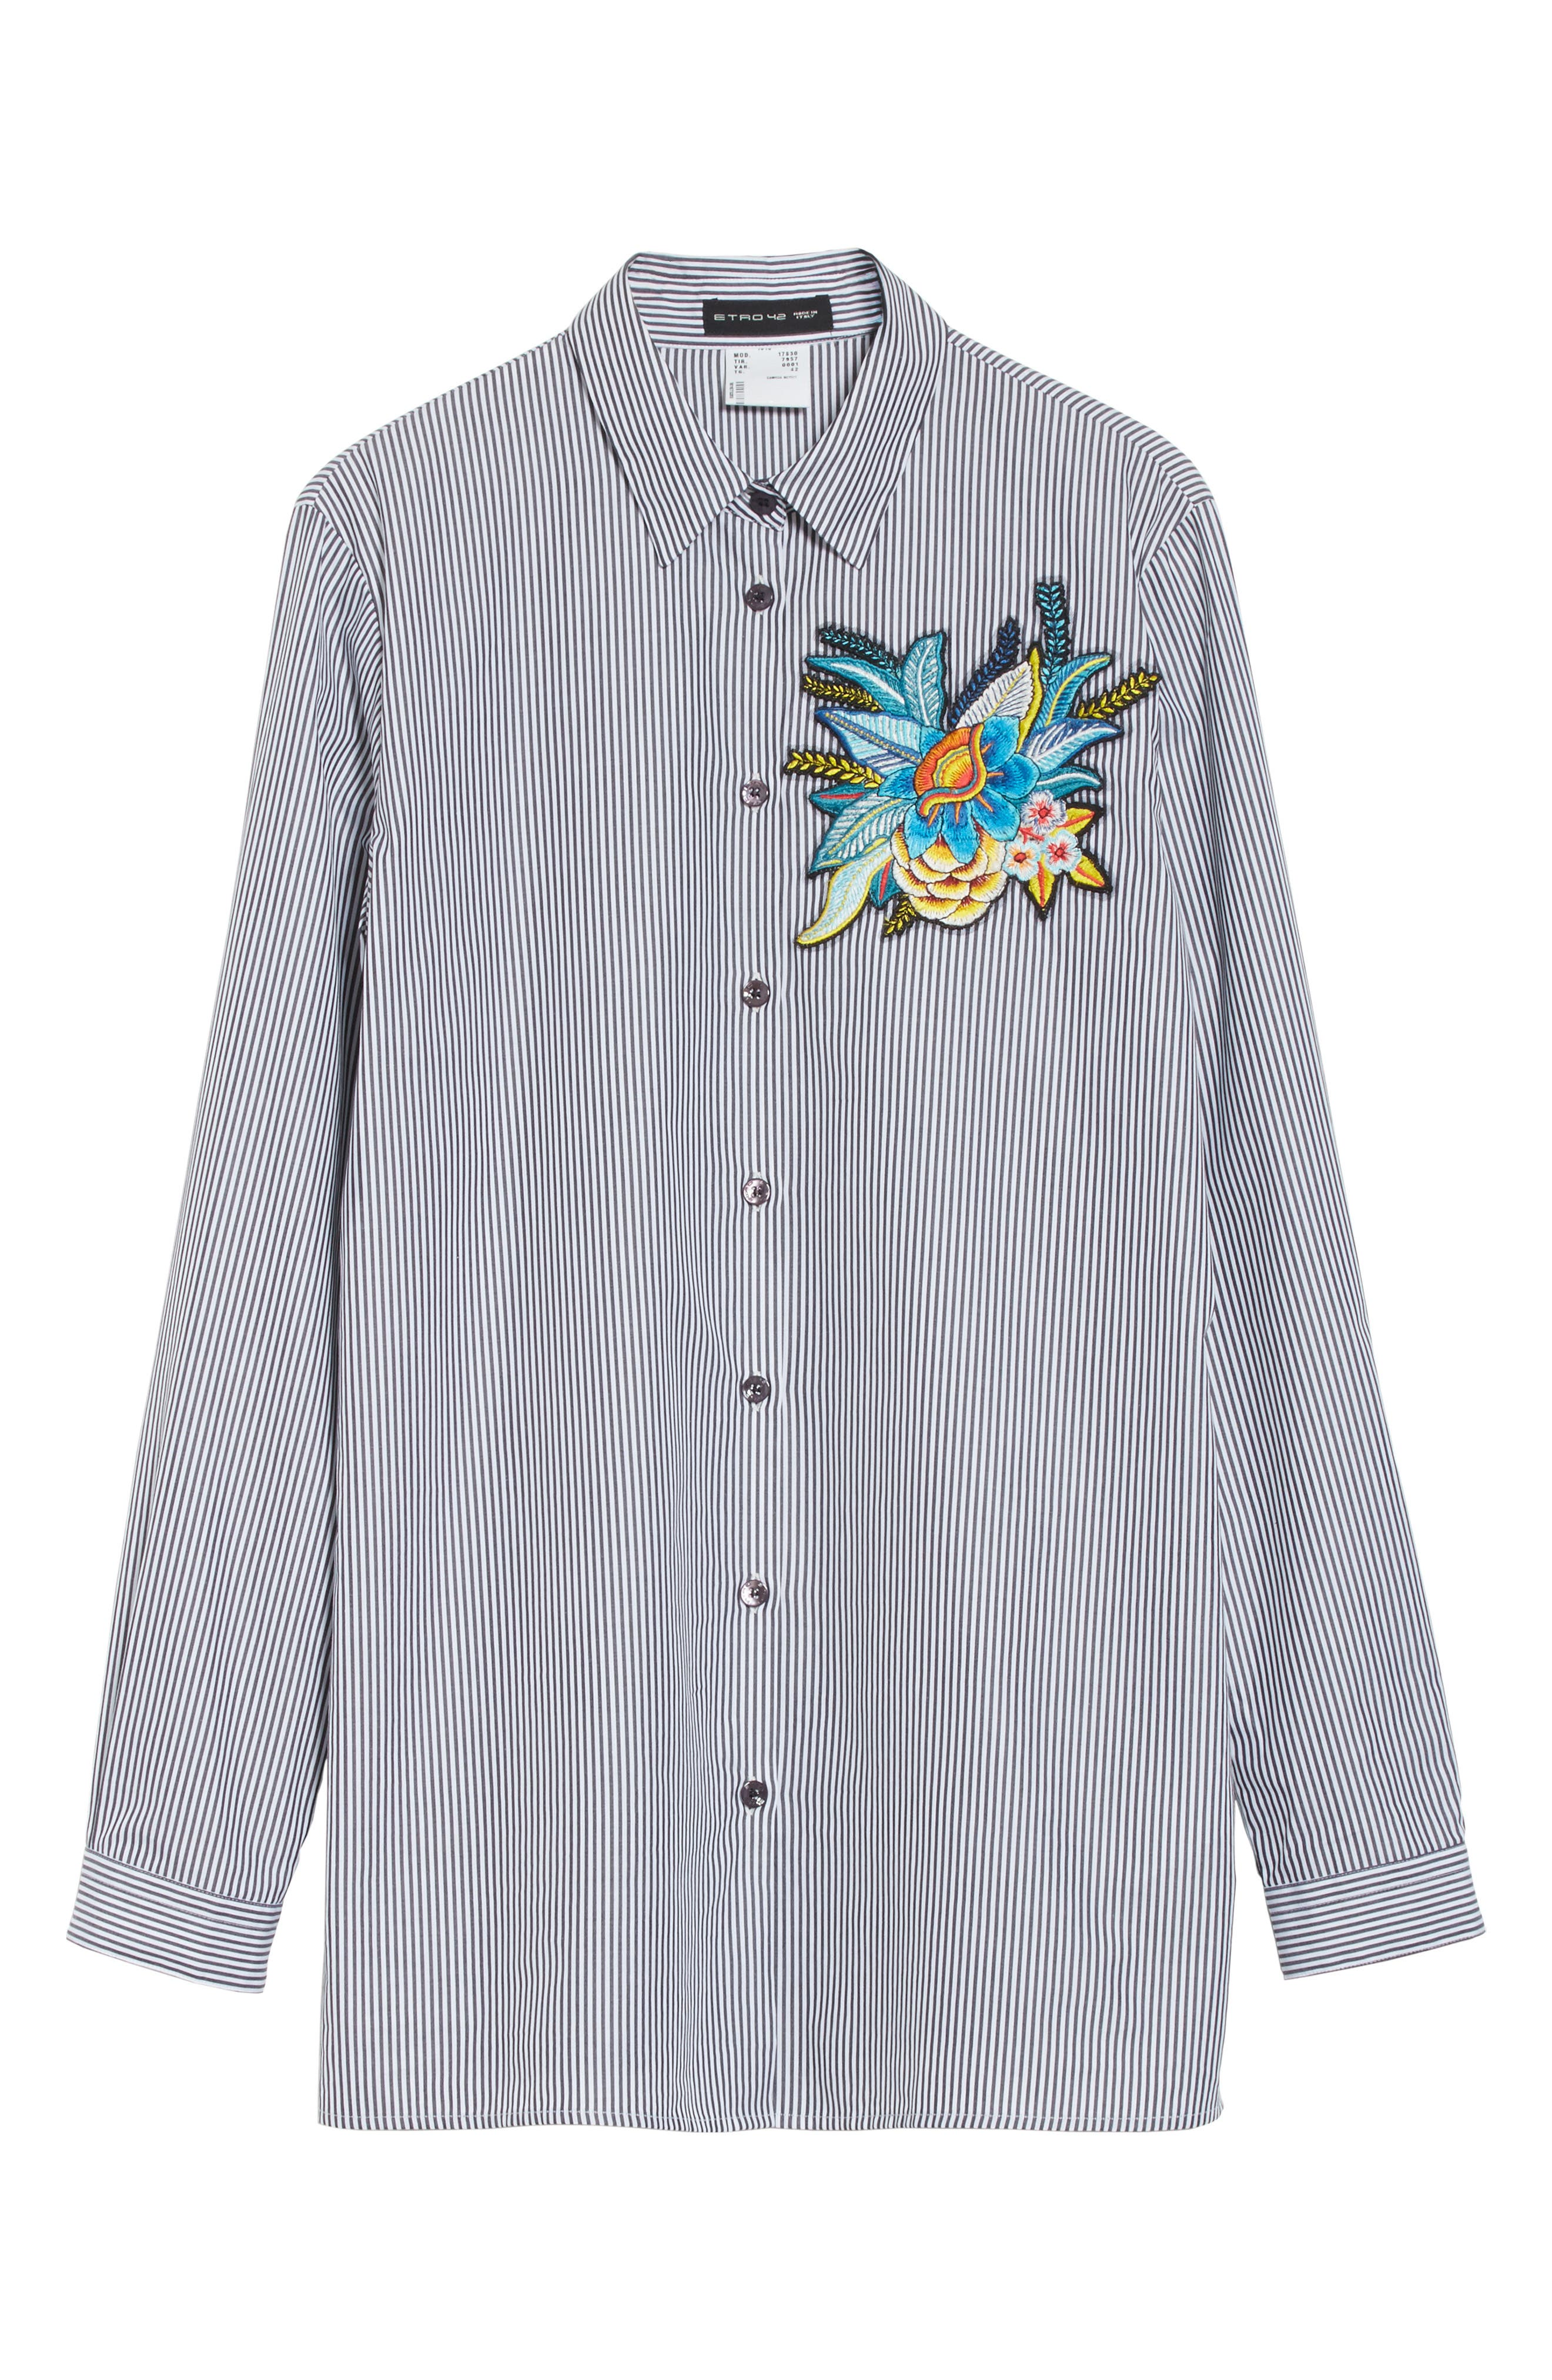 Embroidered Patch Stripe Shirt,                             Alternate thumbnail 6, color,